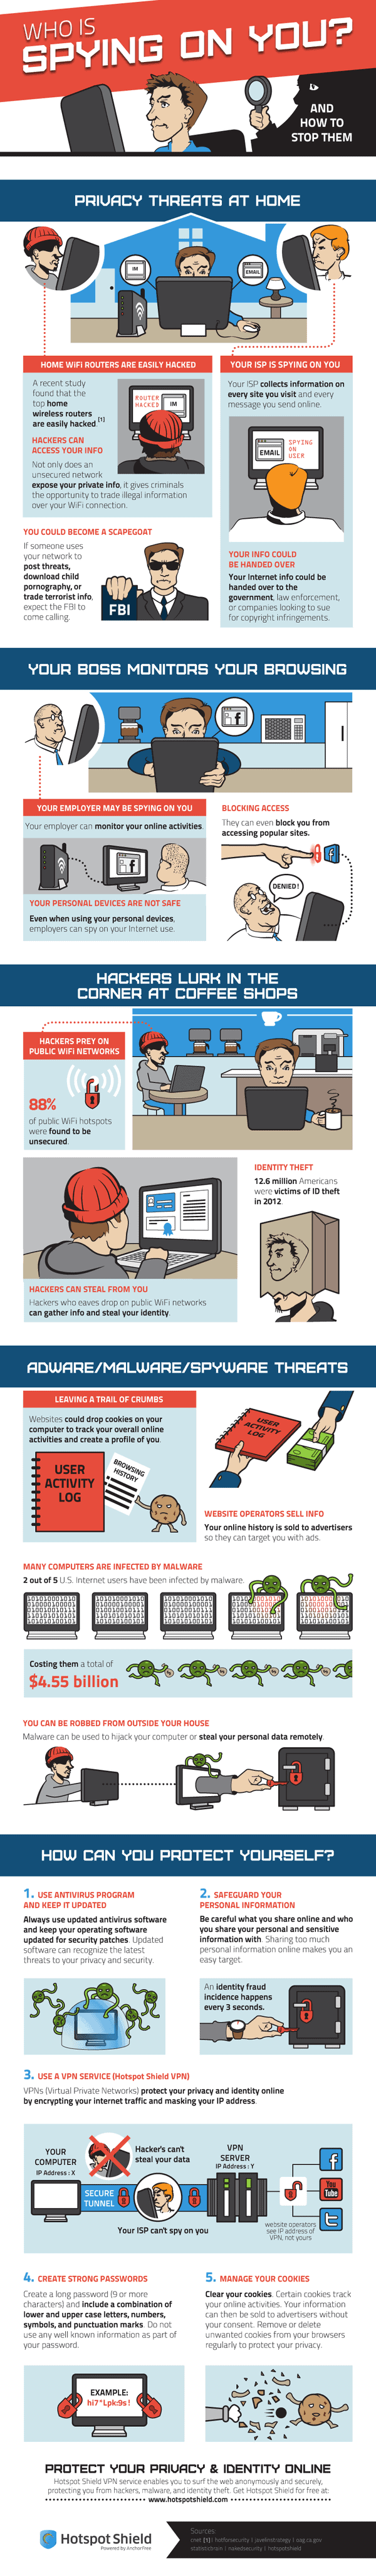 Who is Spying on You Infographic